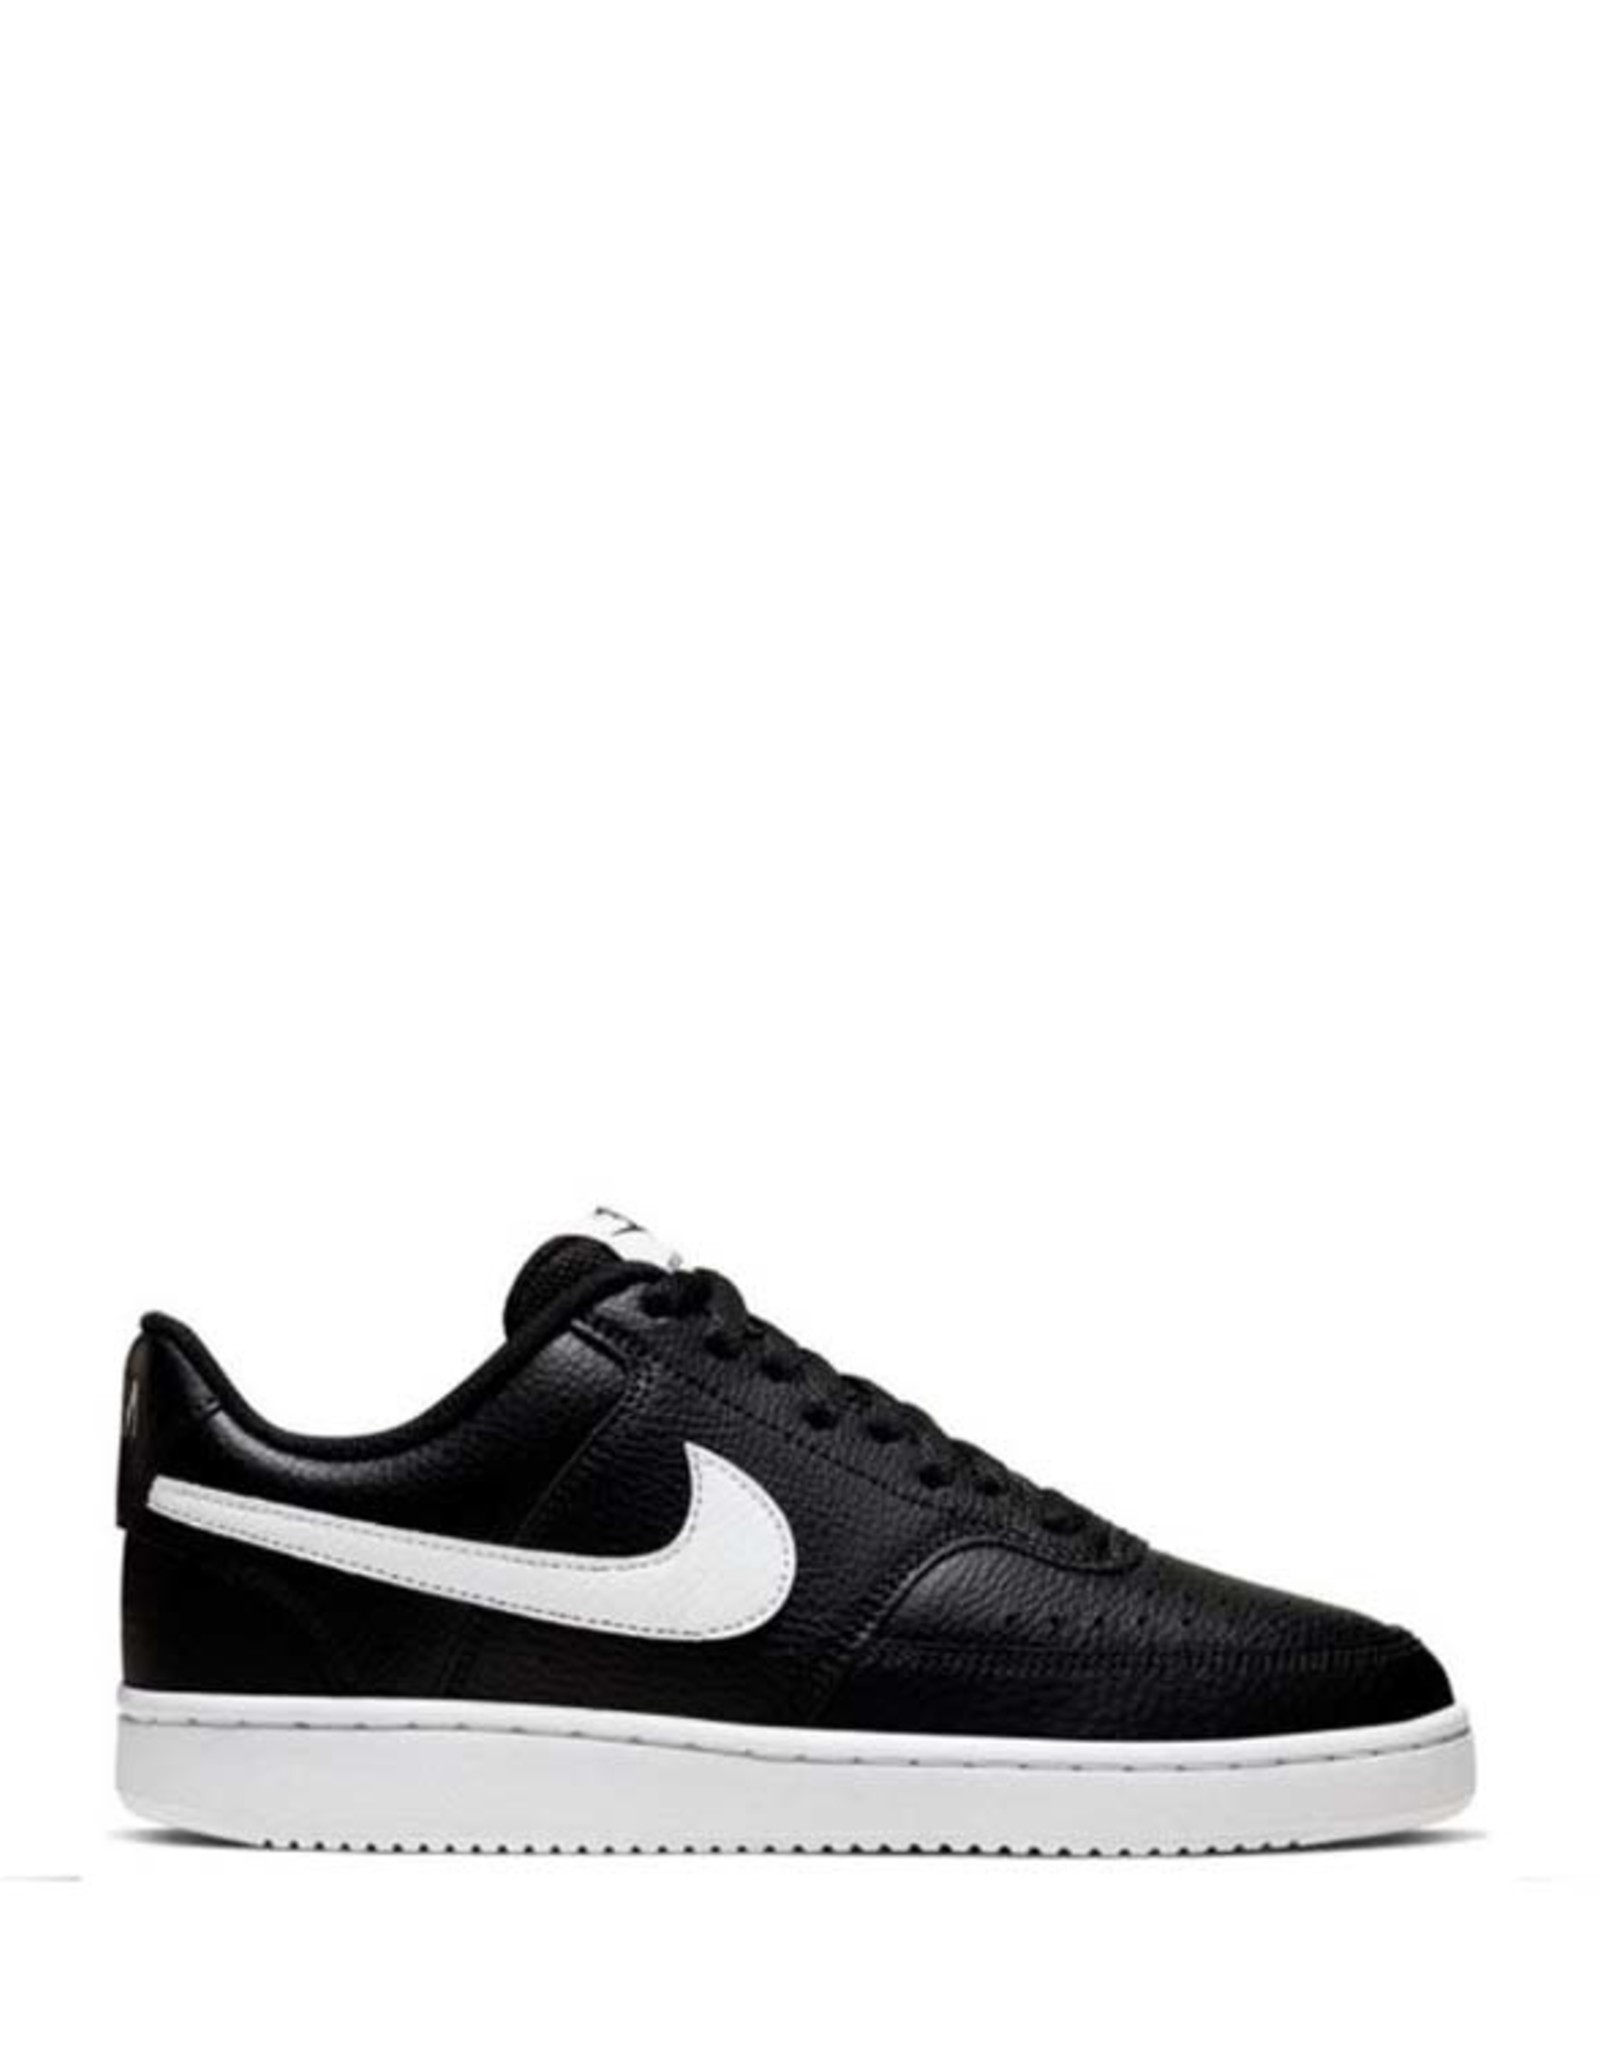 NIKE  COURT VISION LOW WMN'S - BLACK